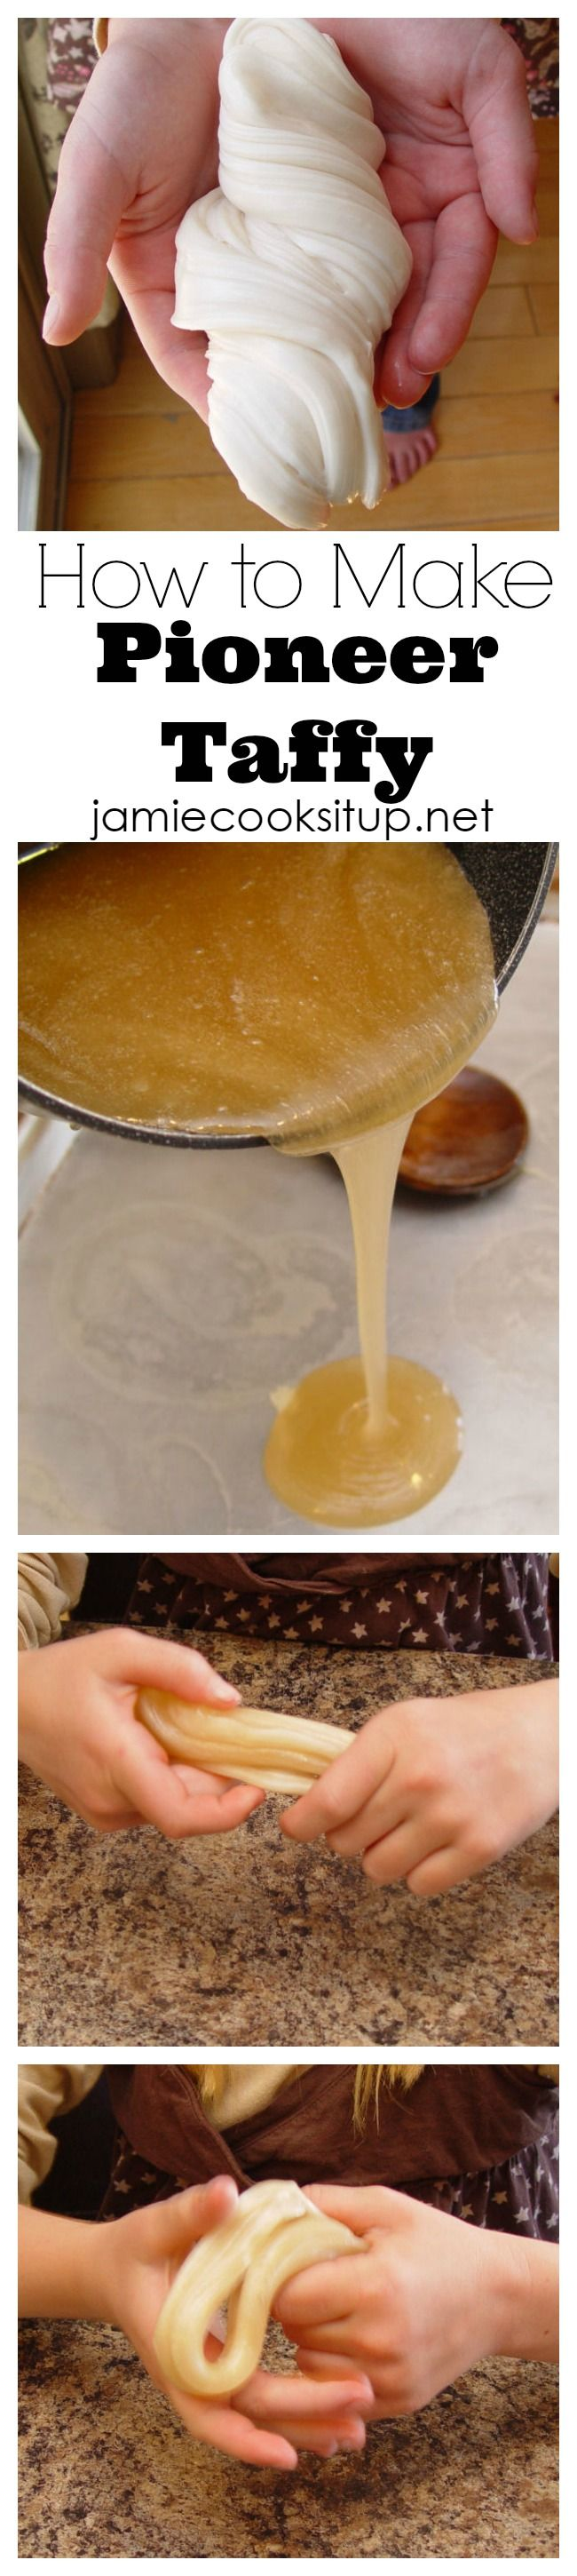 How to make pioneer taffy from Jamie cooks It Up!